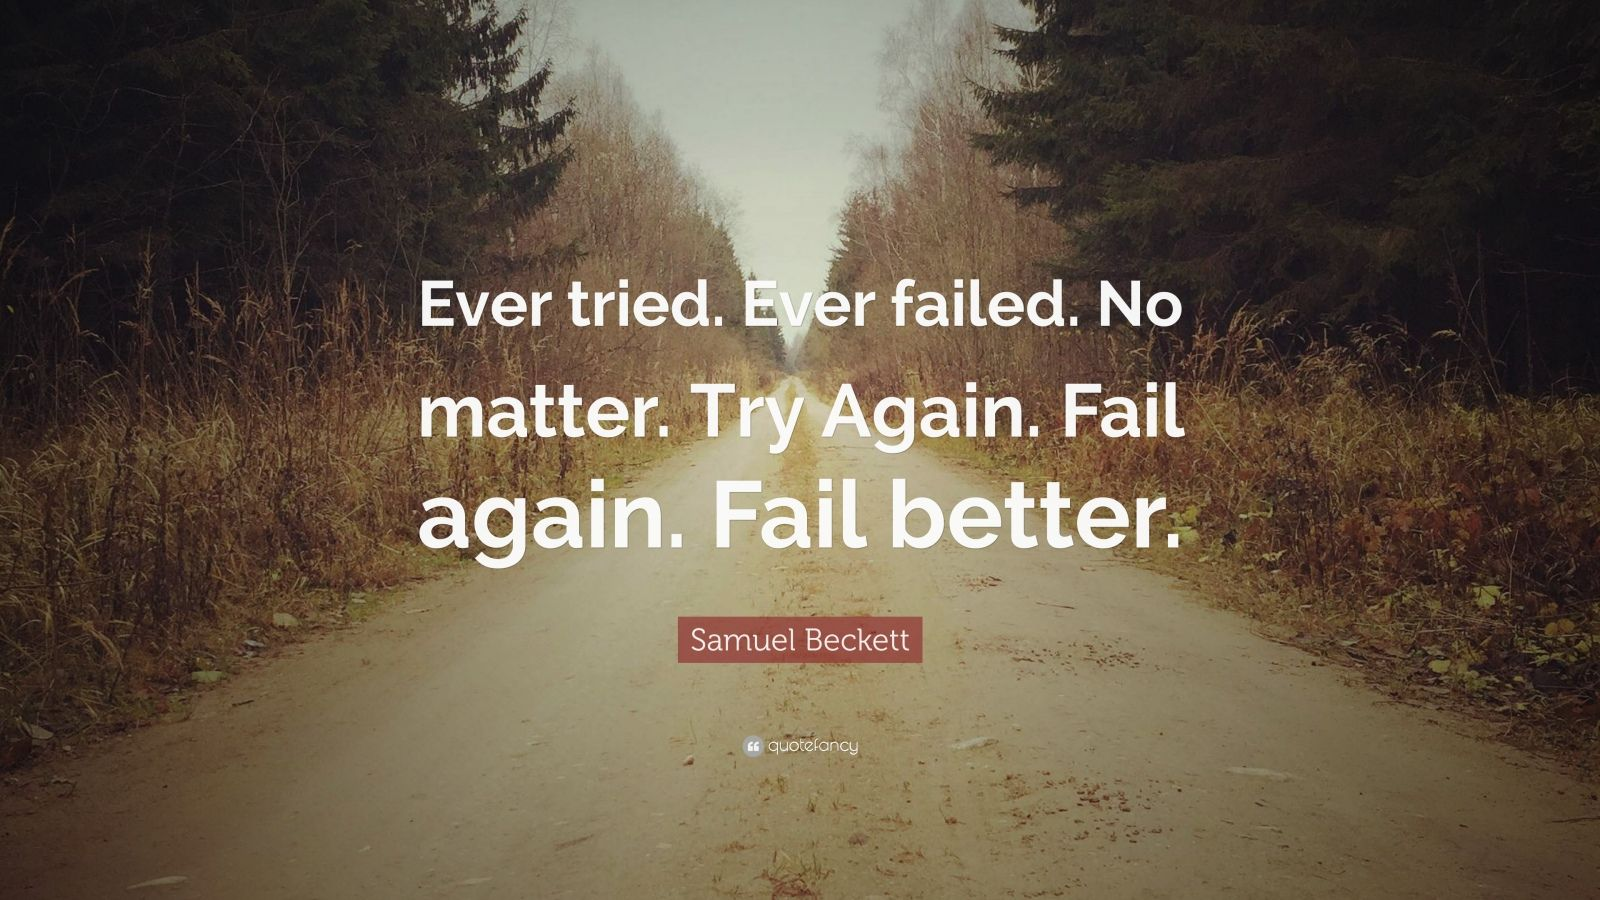 to try and fail is better I do think it is better to try because if you never try, you would never know if you could do it and if you never fail, then you would never learn how to make it right.